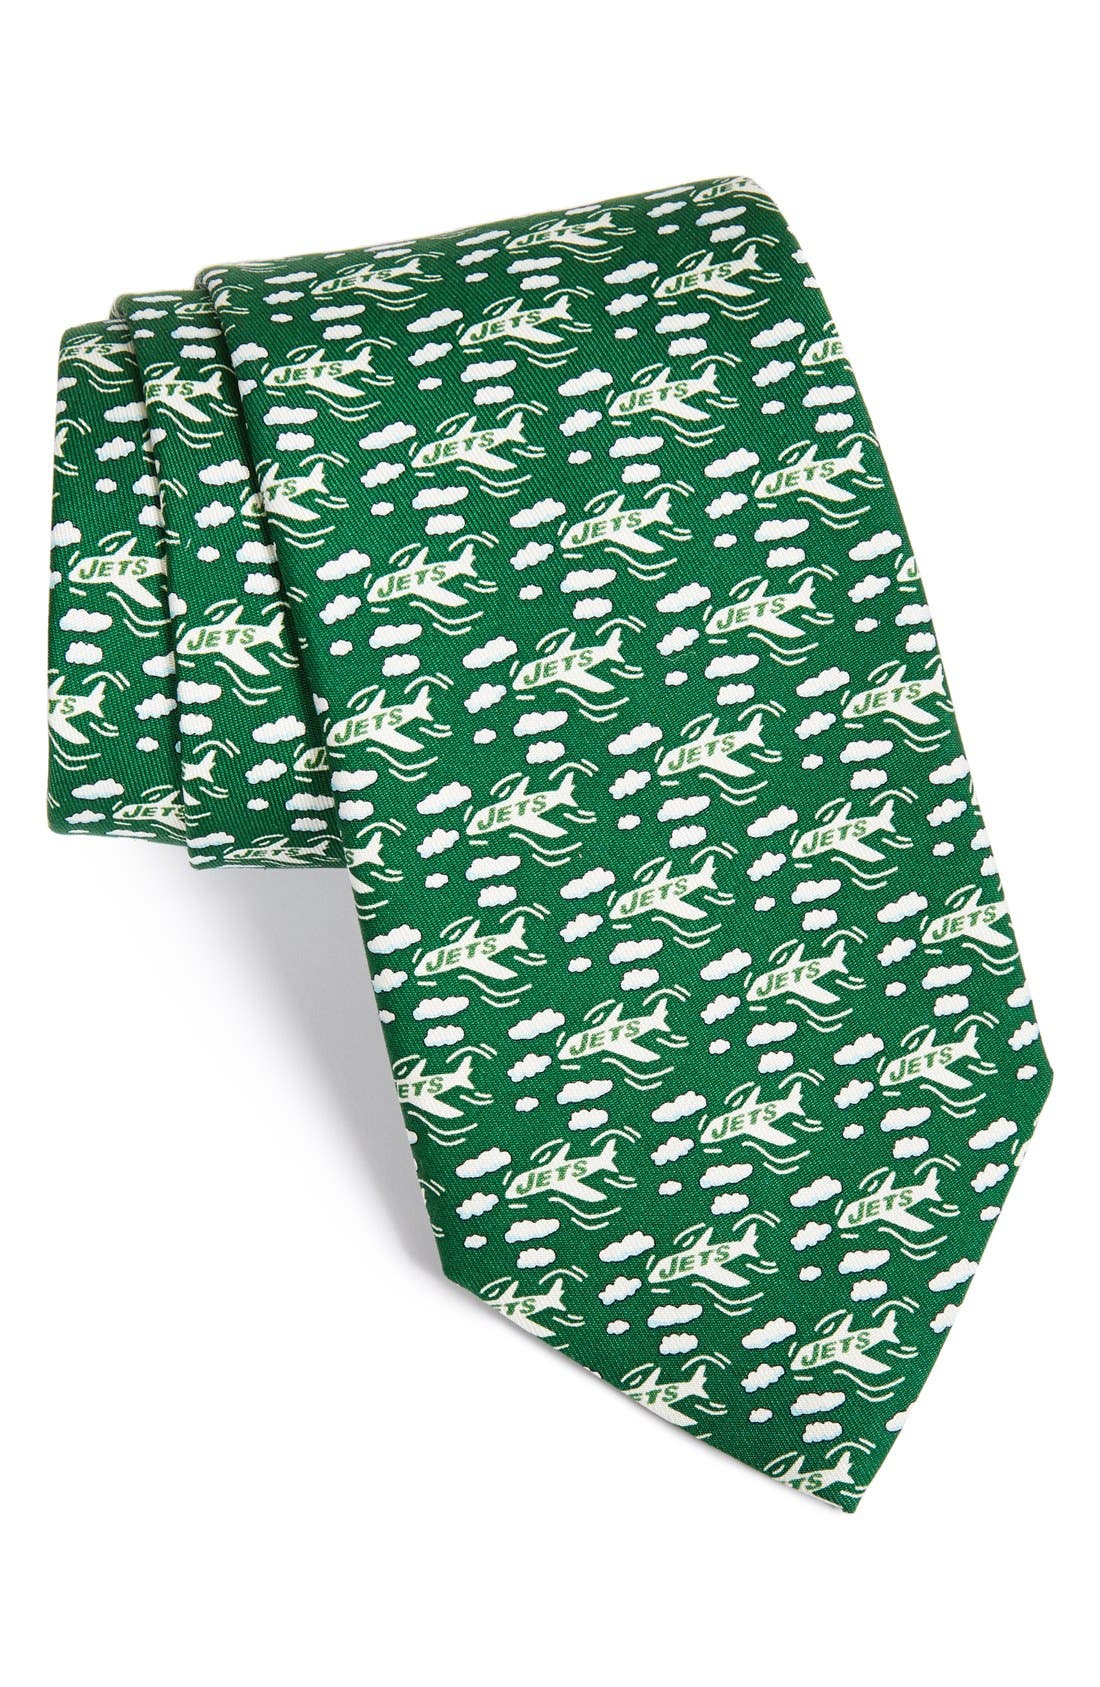 New York Jets - NFL Woven Silk Tie,                             Main thumbnail 1, color,                             Green